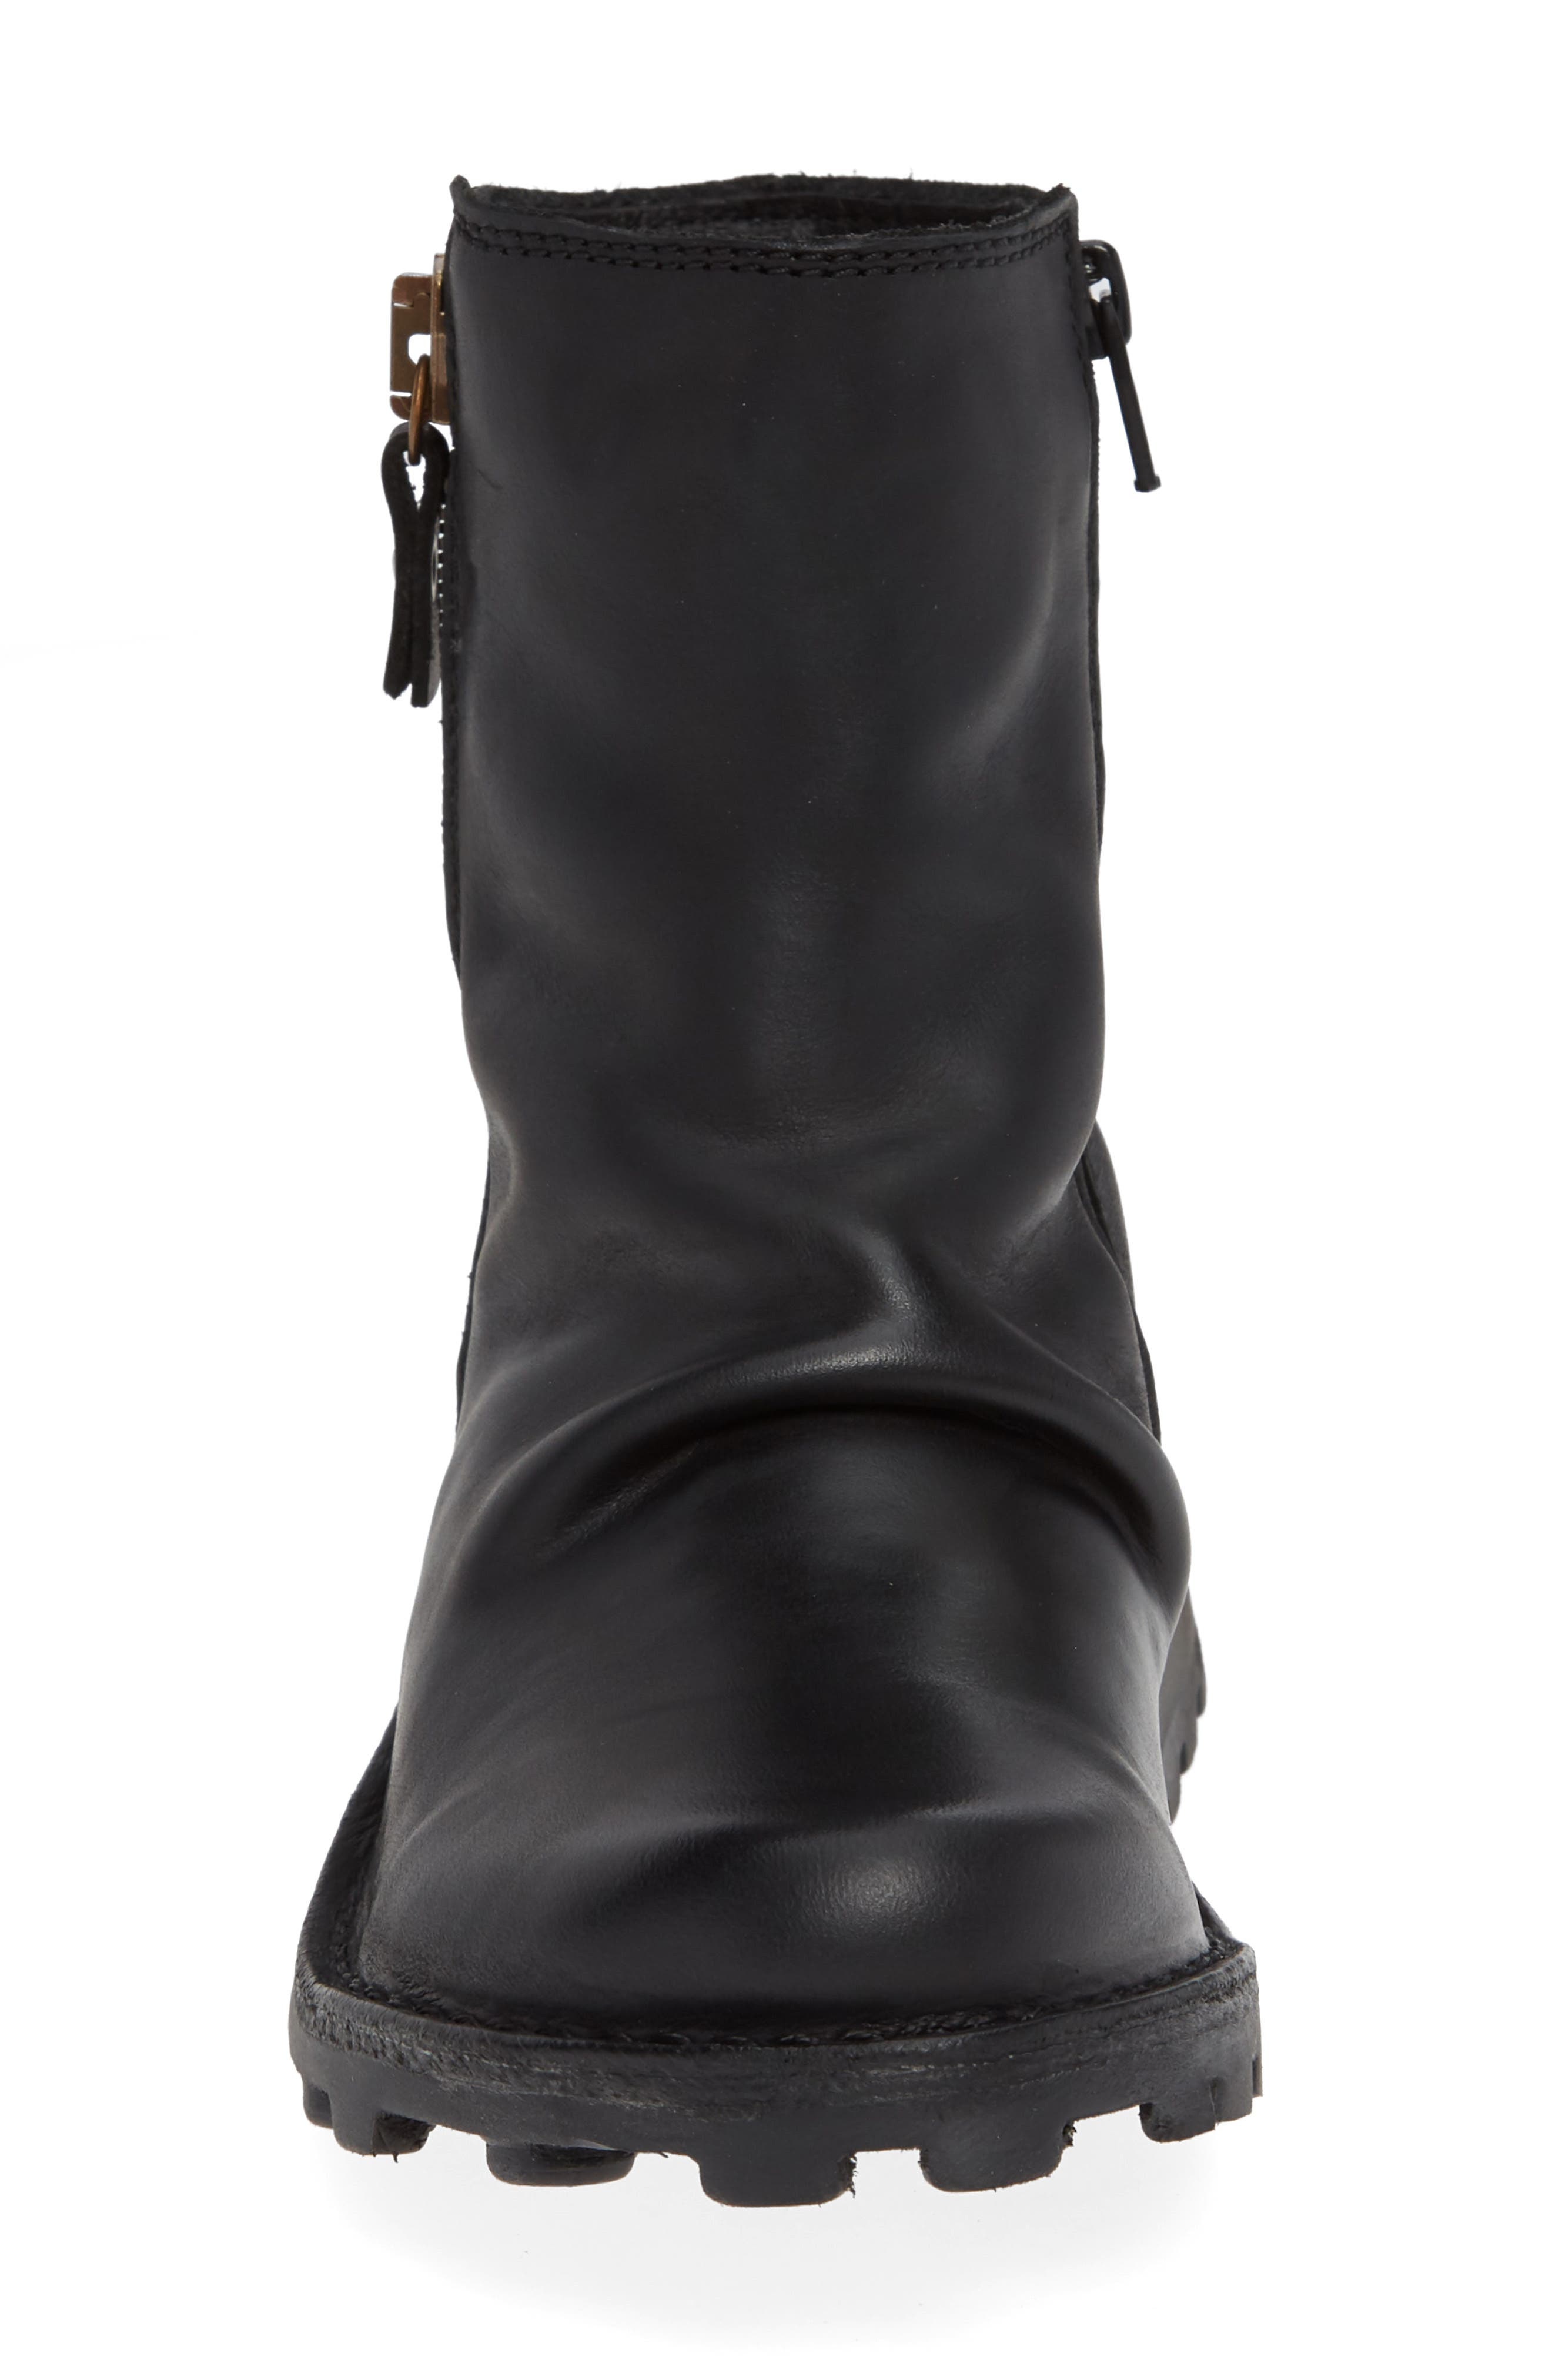 Mong Boot,                             Alternate thumbnail 4, color,                             Black Leather